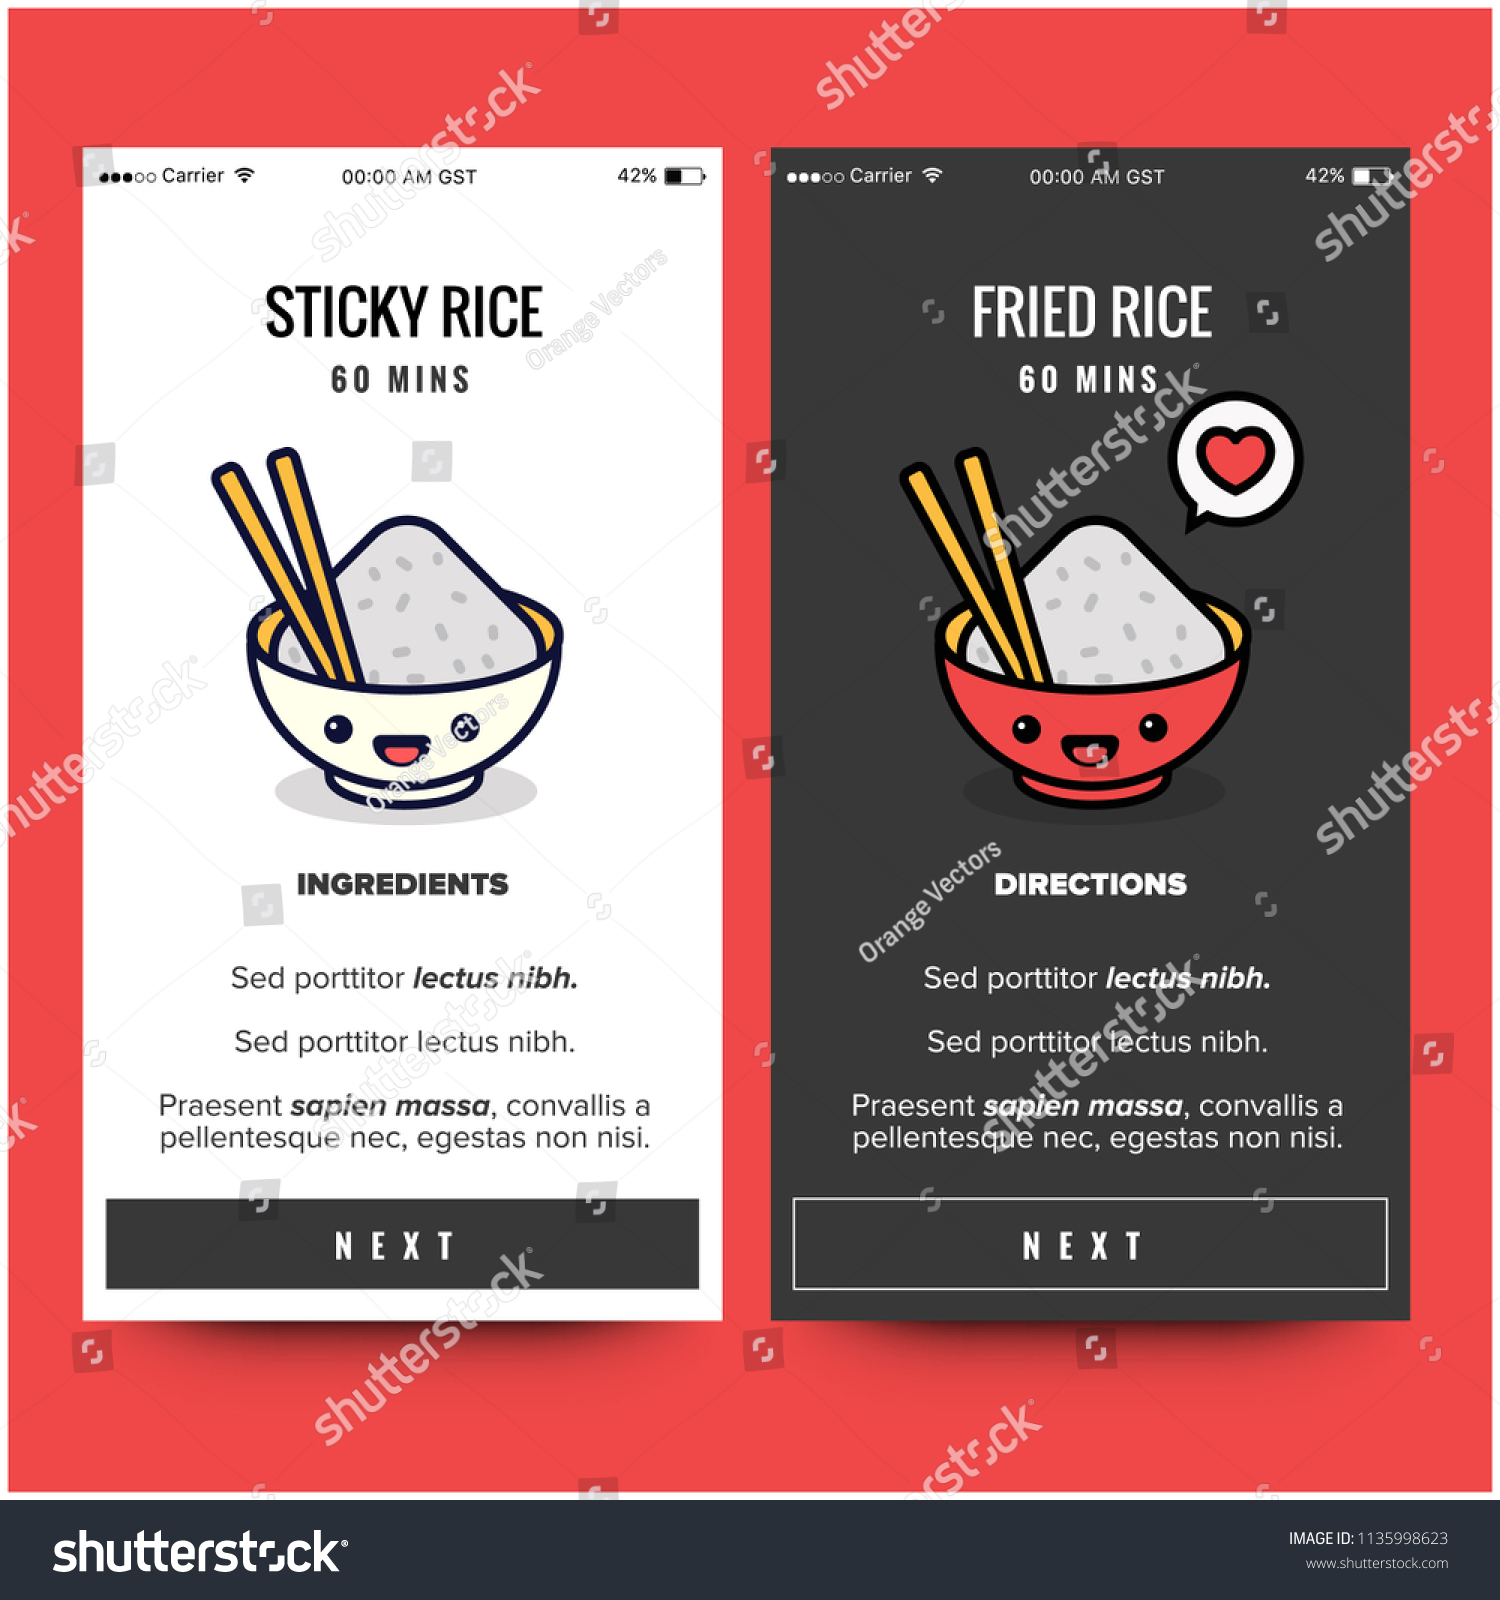 Rice asian food recipe app design stock vector 1135998623 shutterstock forumfinder Choice Image